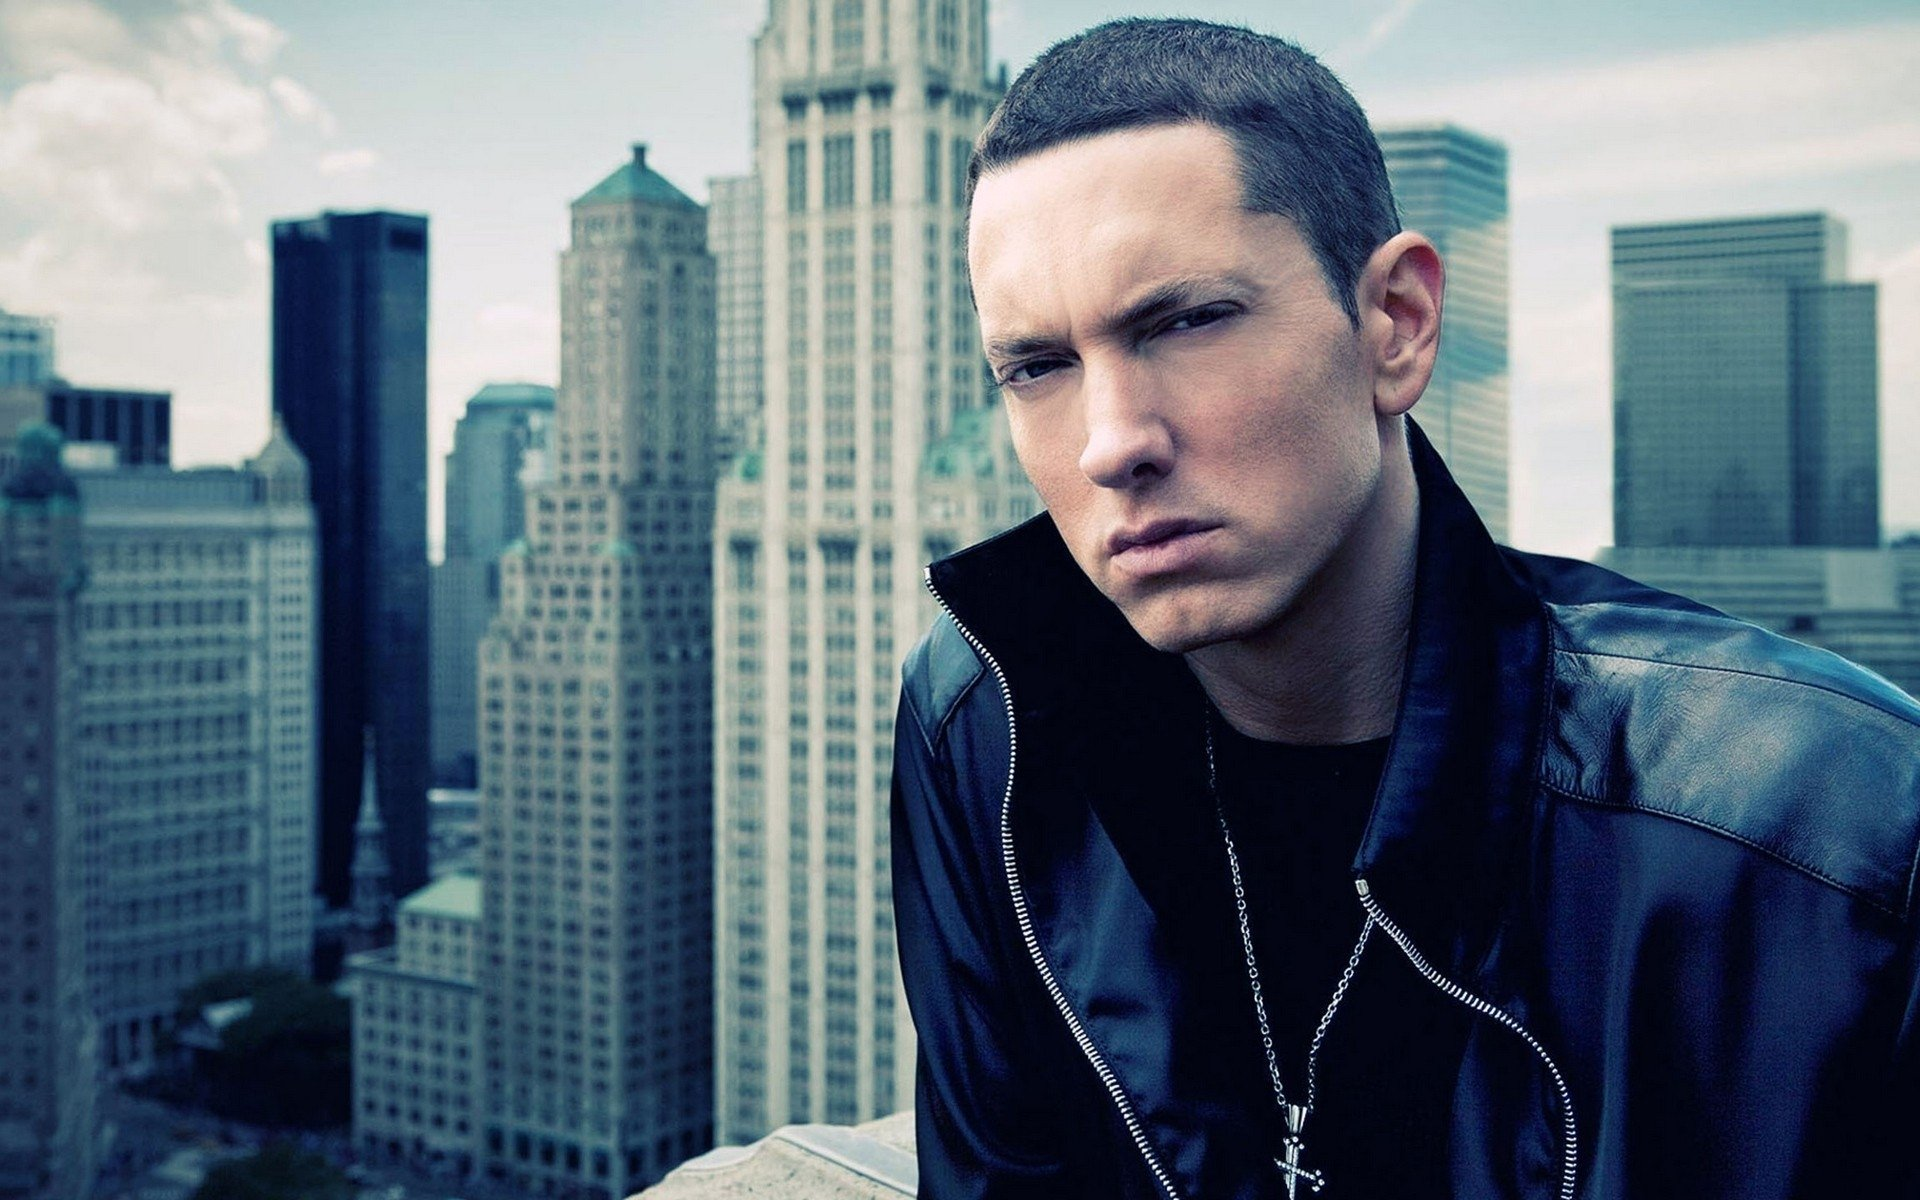 Eminem Not Afraid wallpaper HD Wallpaper Background Image 1920x1200